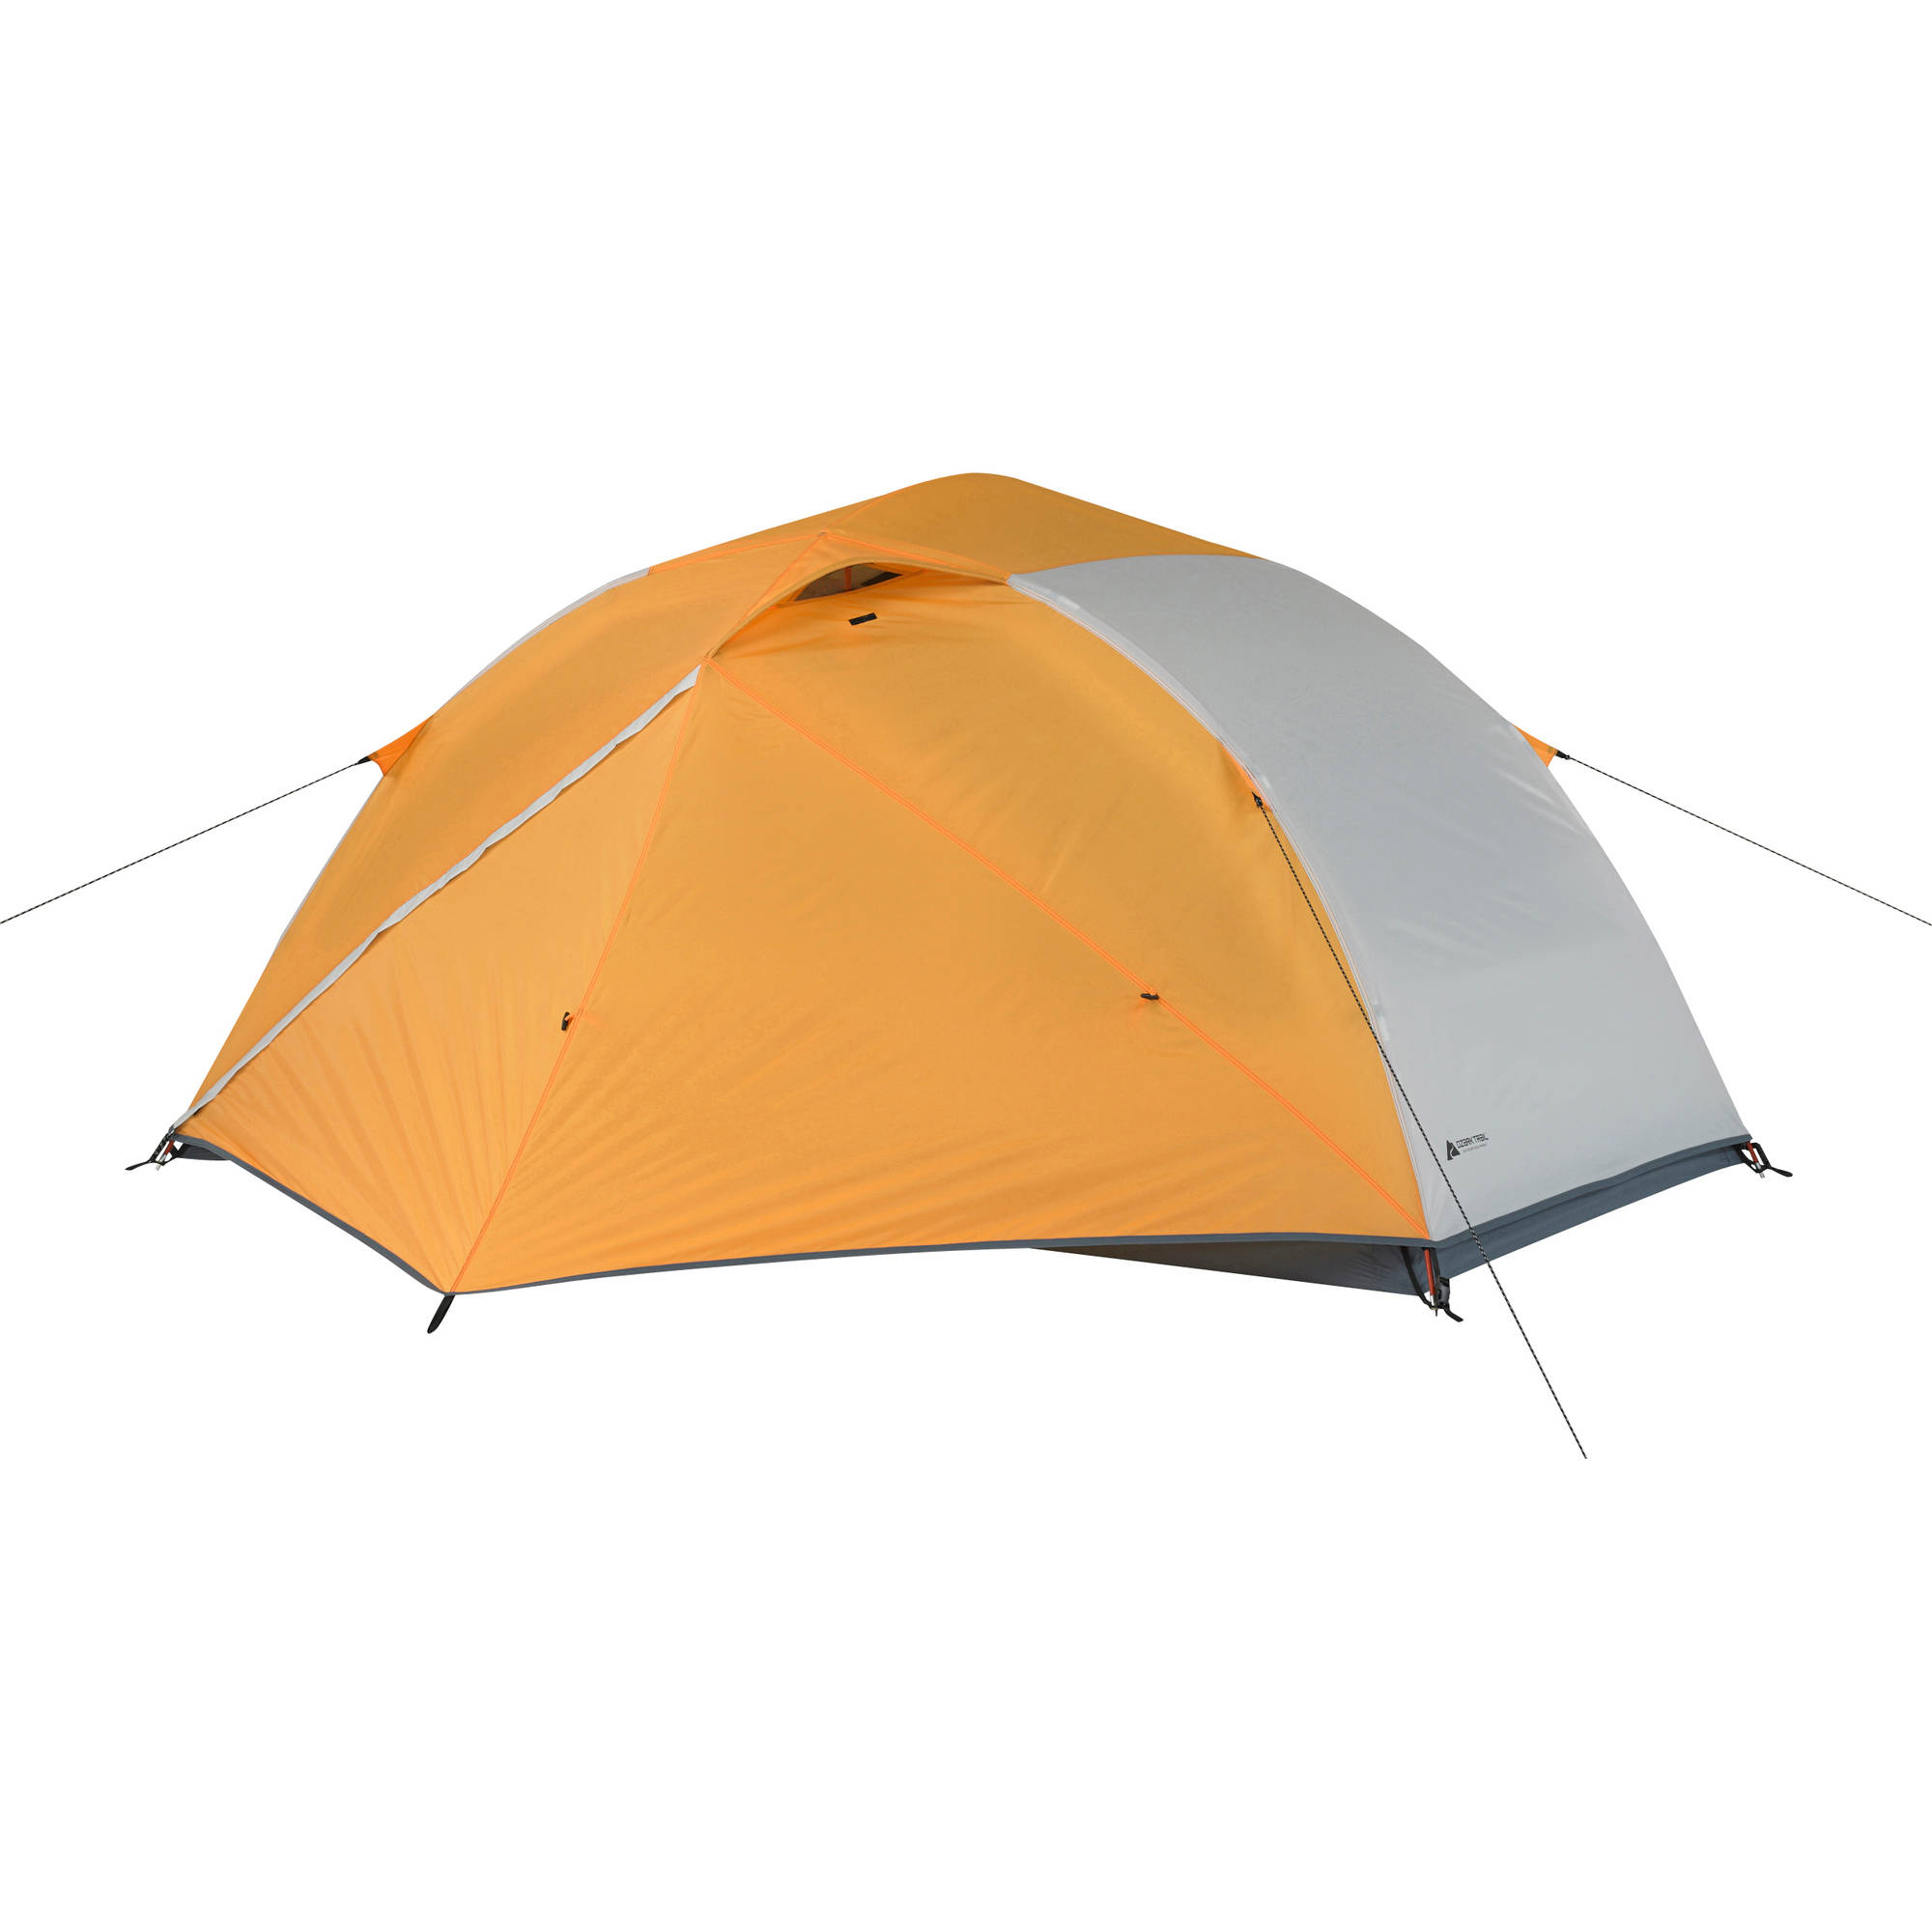 Ozark Trail 4-Season 2-Person Hiker Tent  sc 1 st  Walmart : neverwet on tent - memphite.com